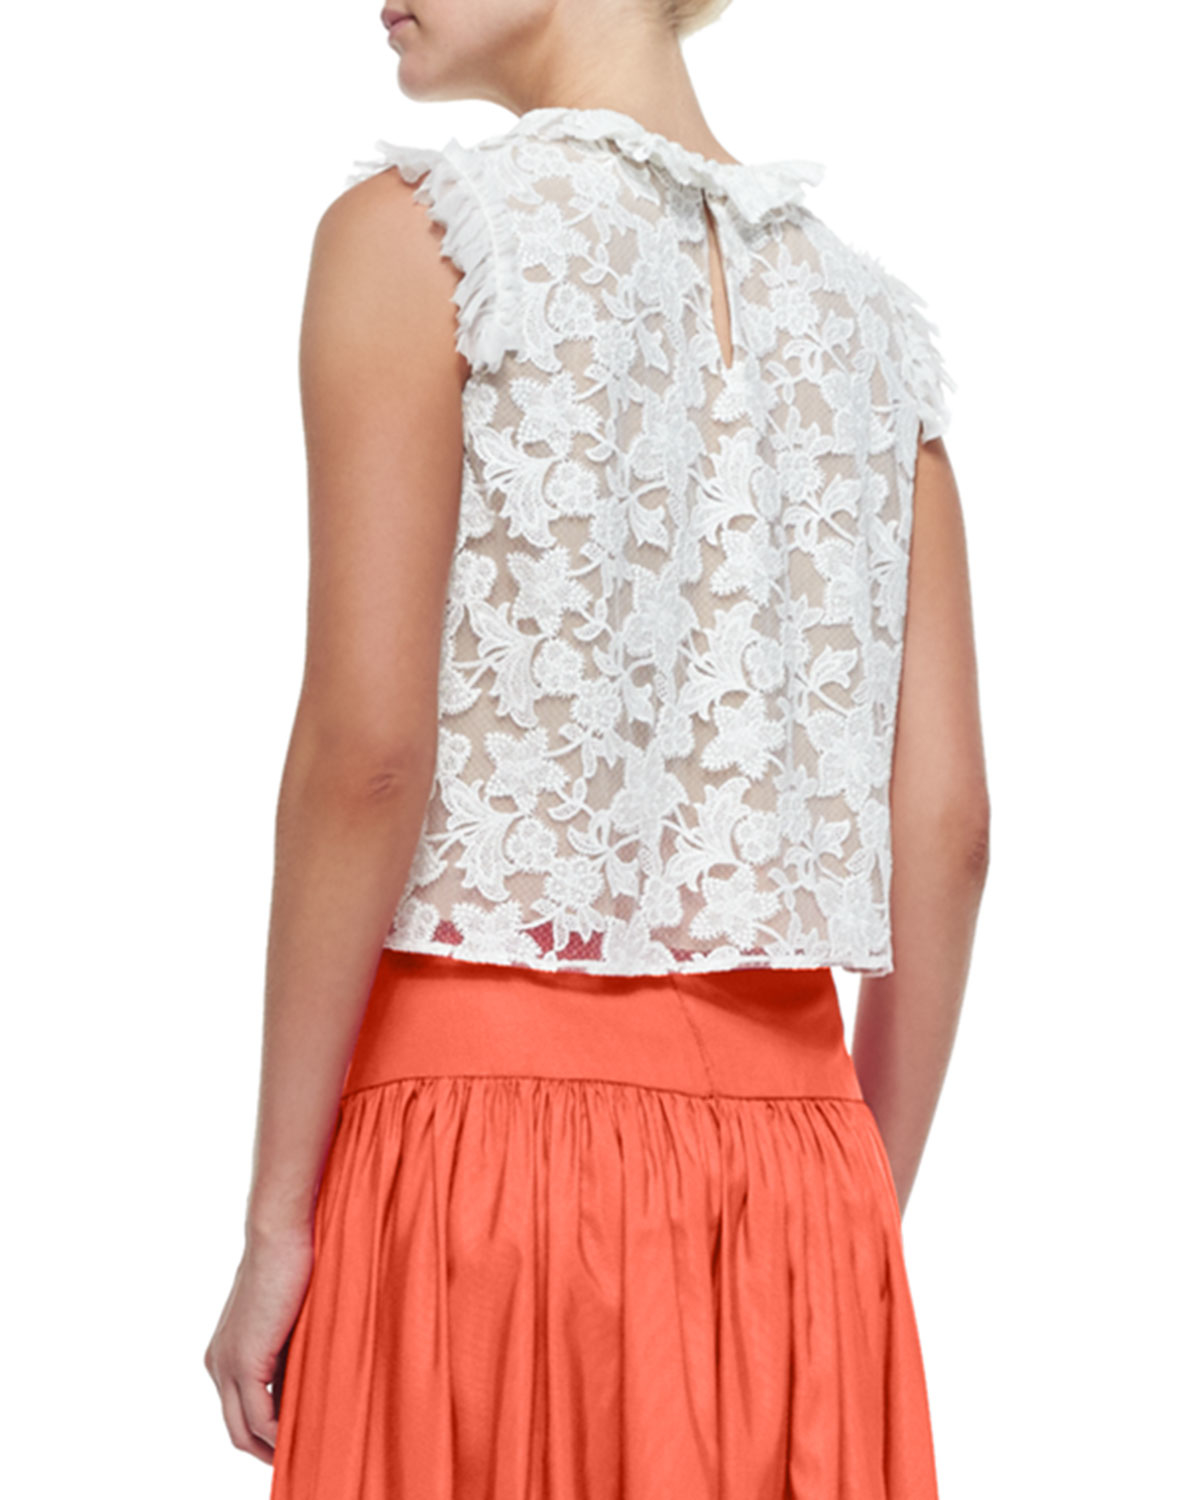 25c2ba55490 Alexis Fran Sleeveless Ruffle-trim Lace Crop Top in White - Lyst